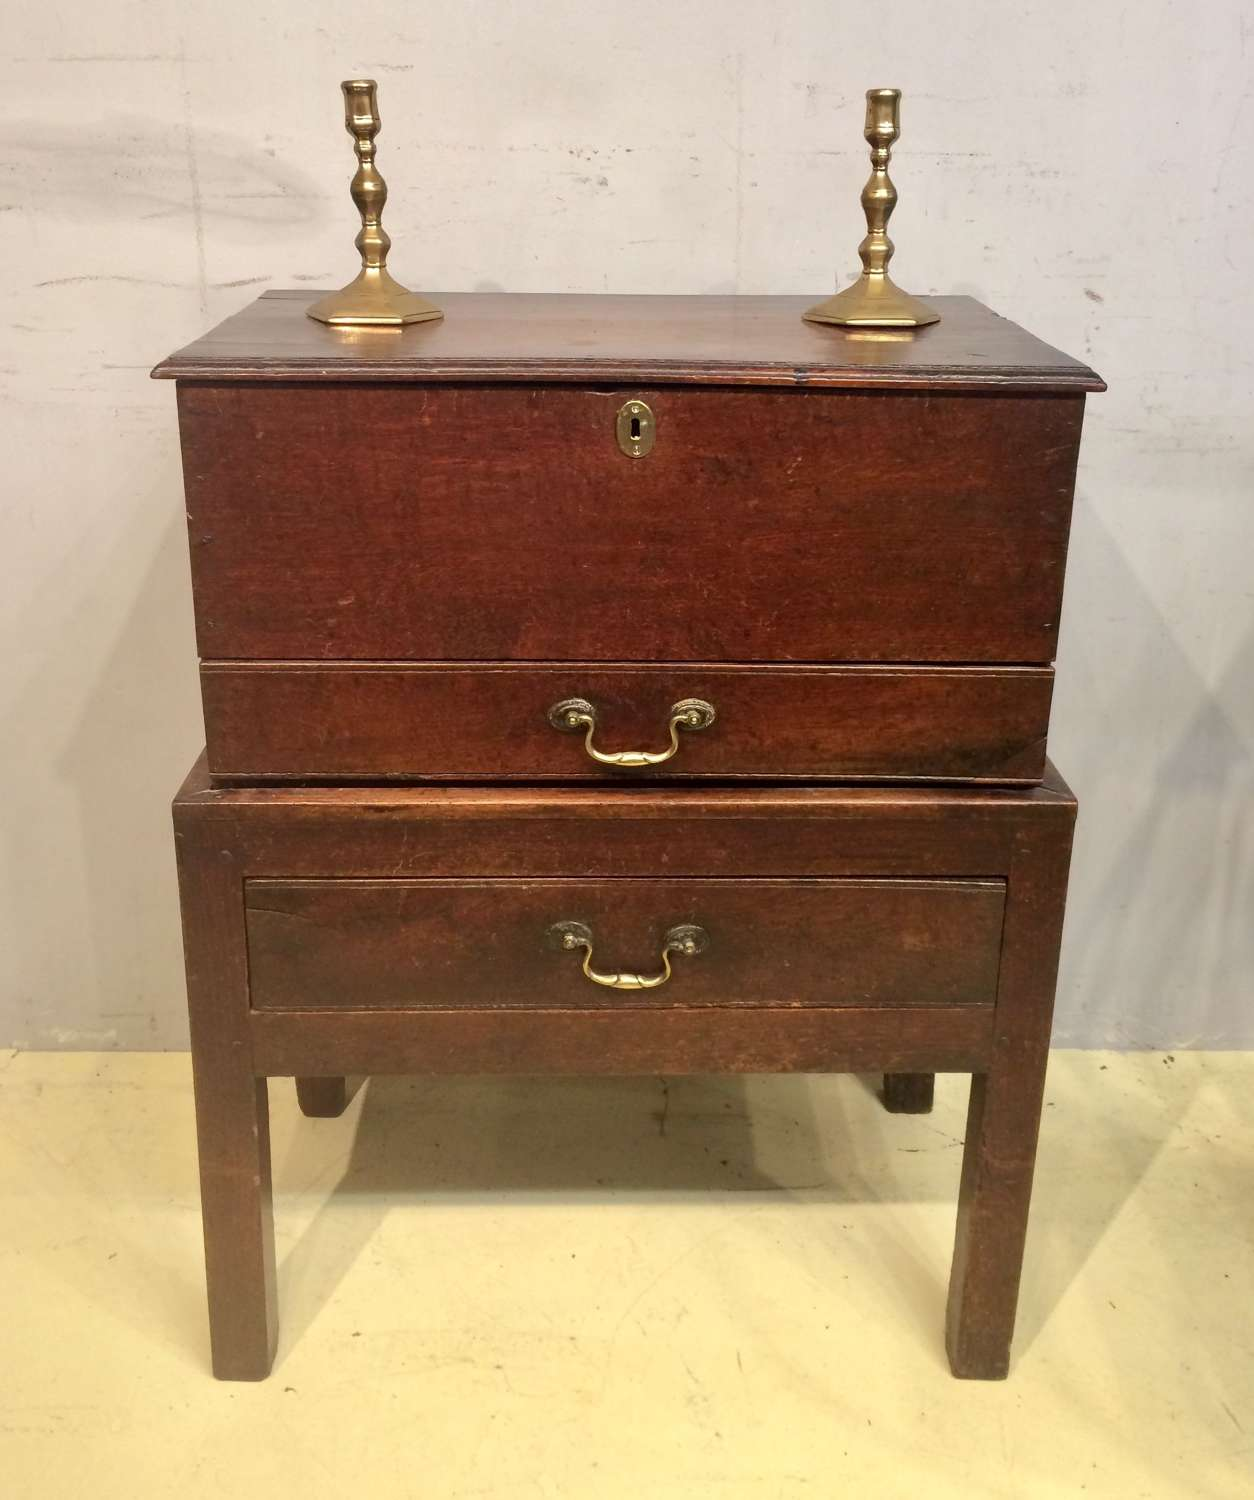 18th century Welsh oak chest on stand.